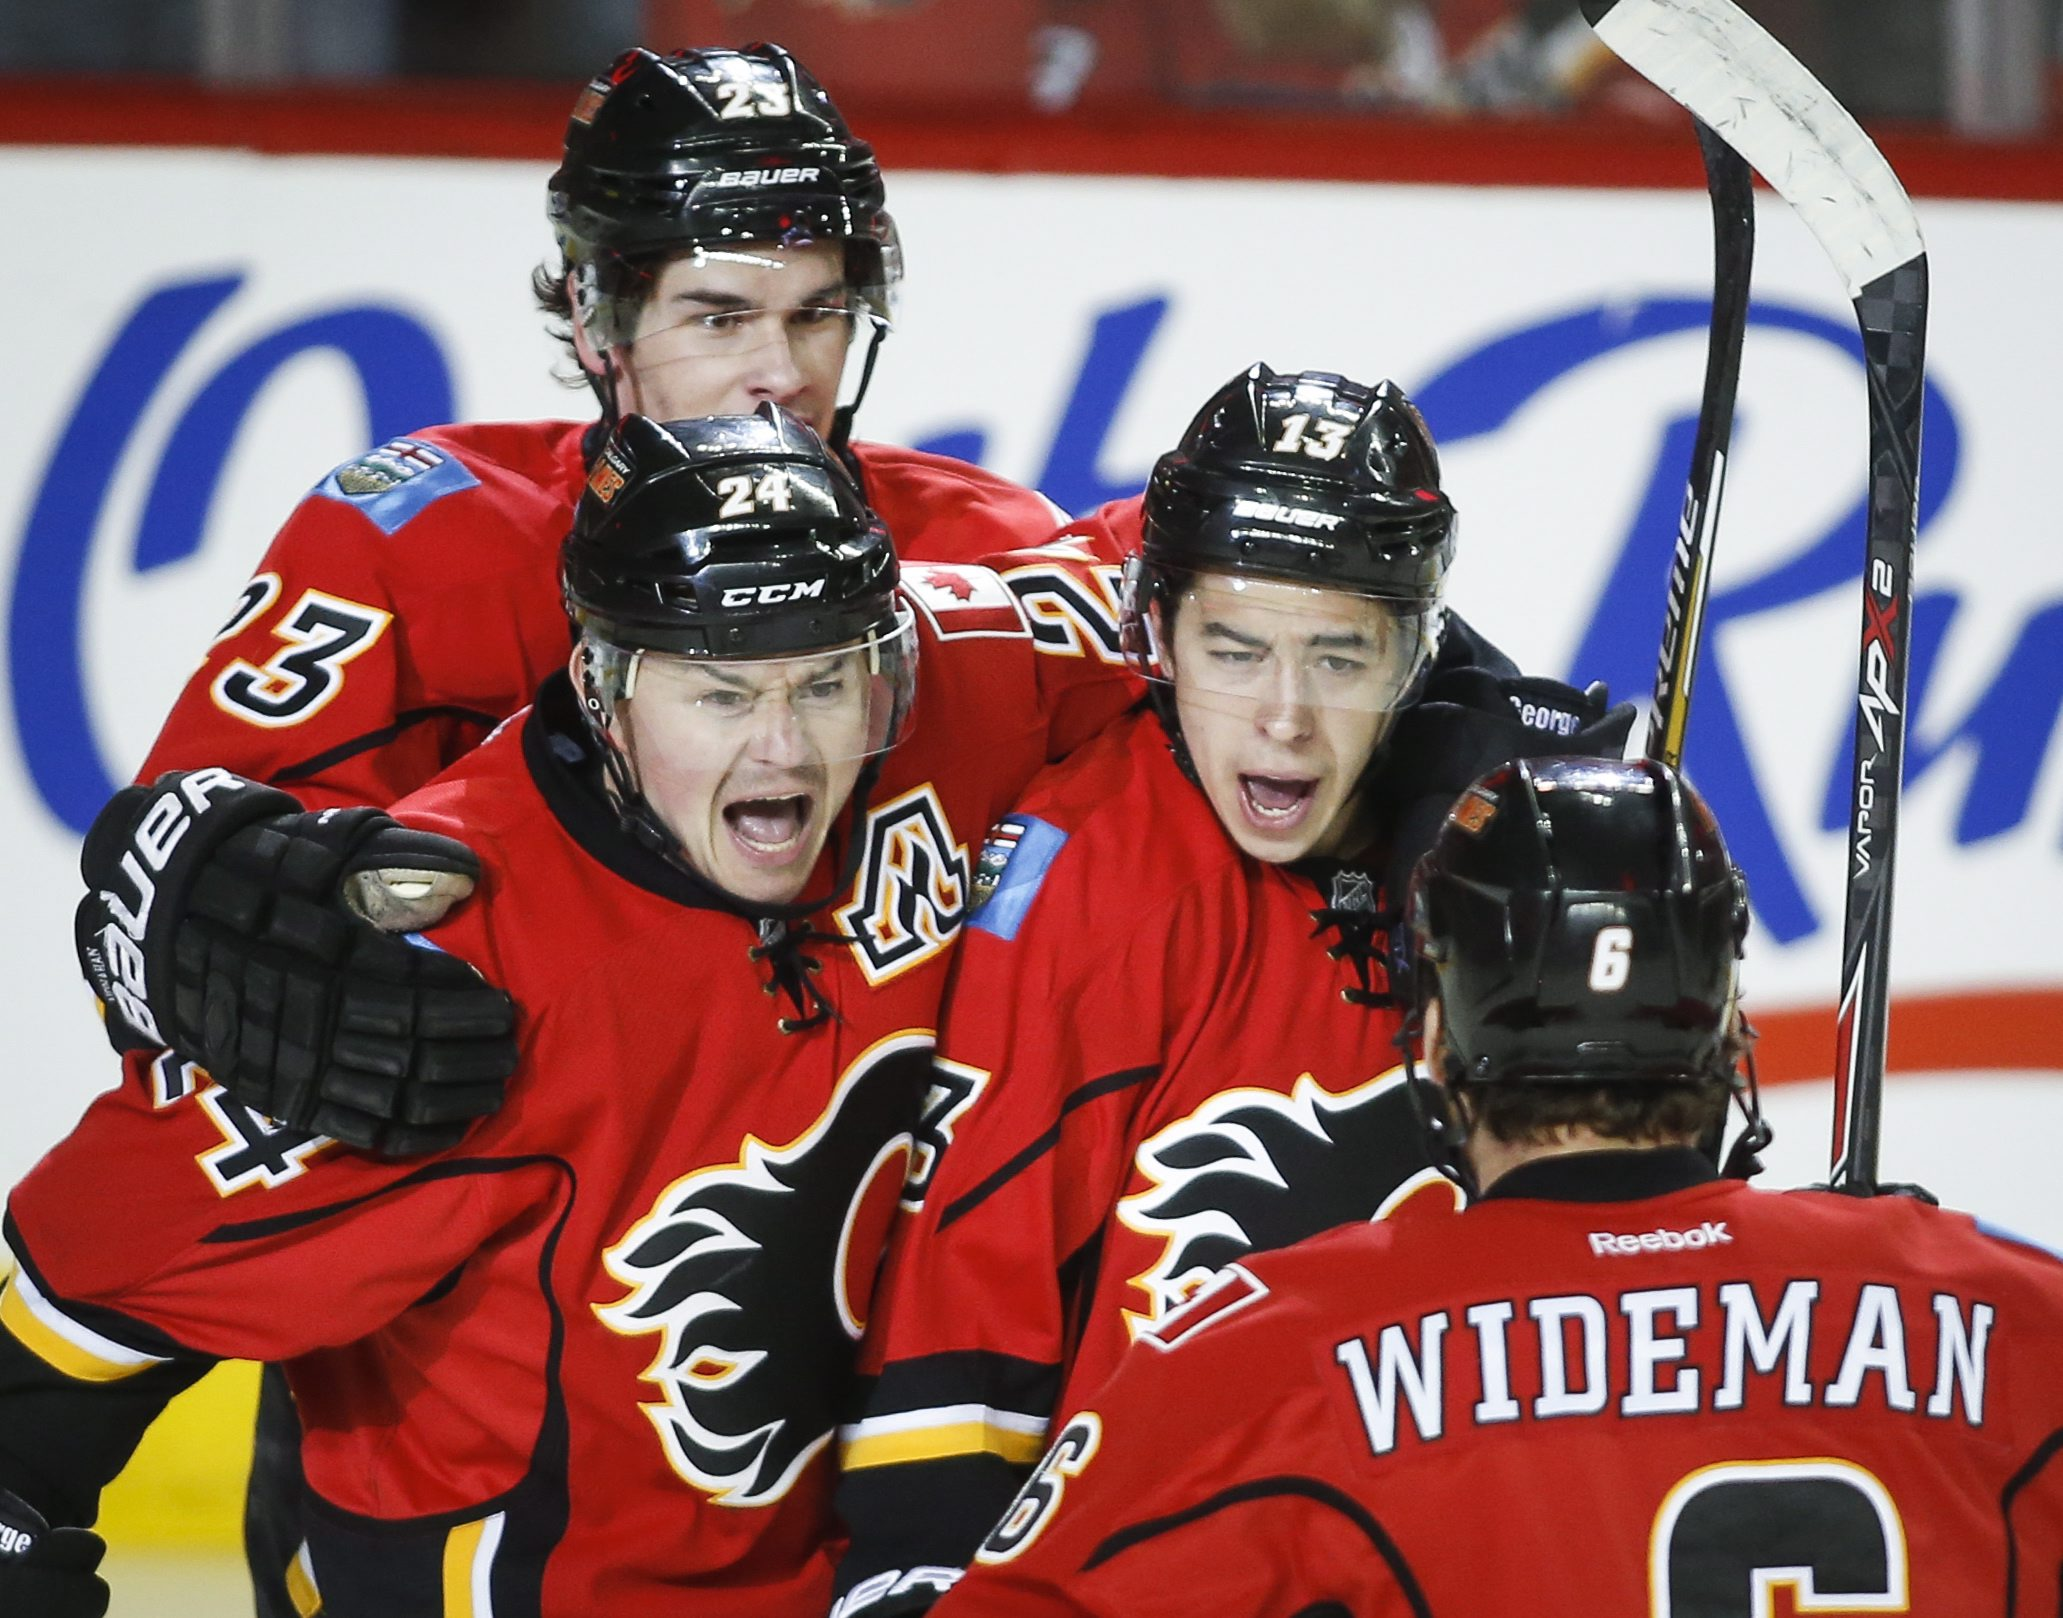 Calgary Flames' Johnny Gaudreau, center right, celebrates his goal with against the Vancouver Canucks with teammates Sean Monahan, left, Jiri Hudler, center left, from the Czech Republic and Dennis Wideman during the first period of Game 4 of a first-roun